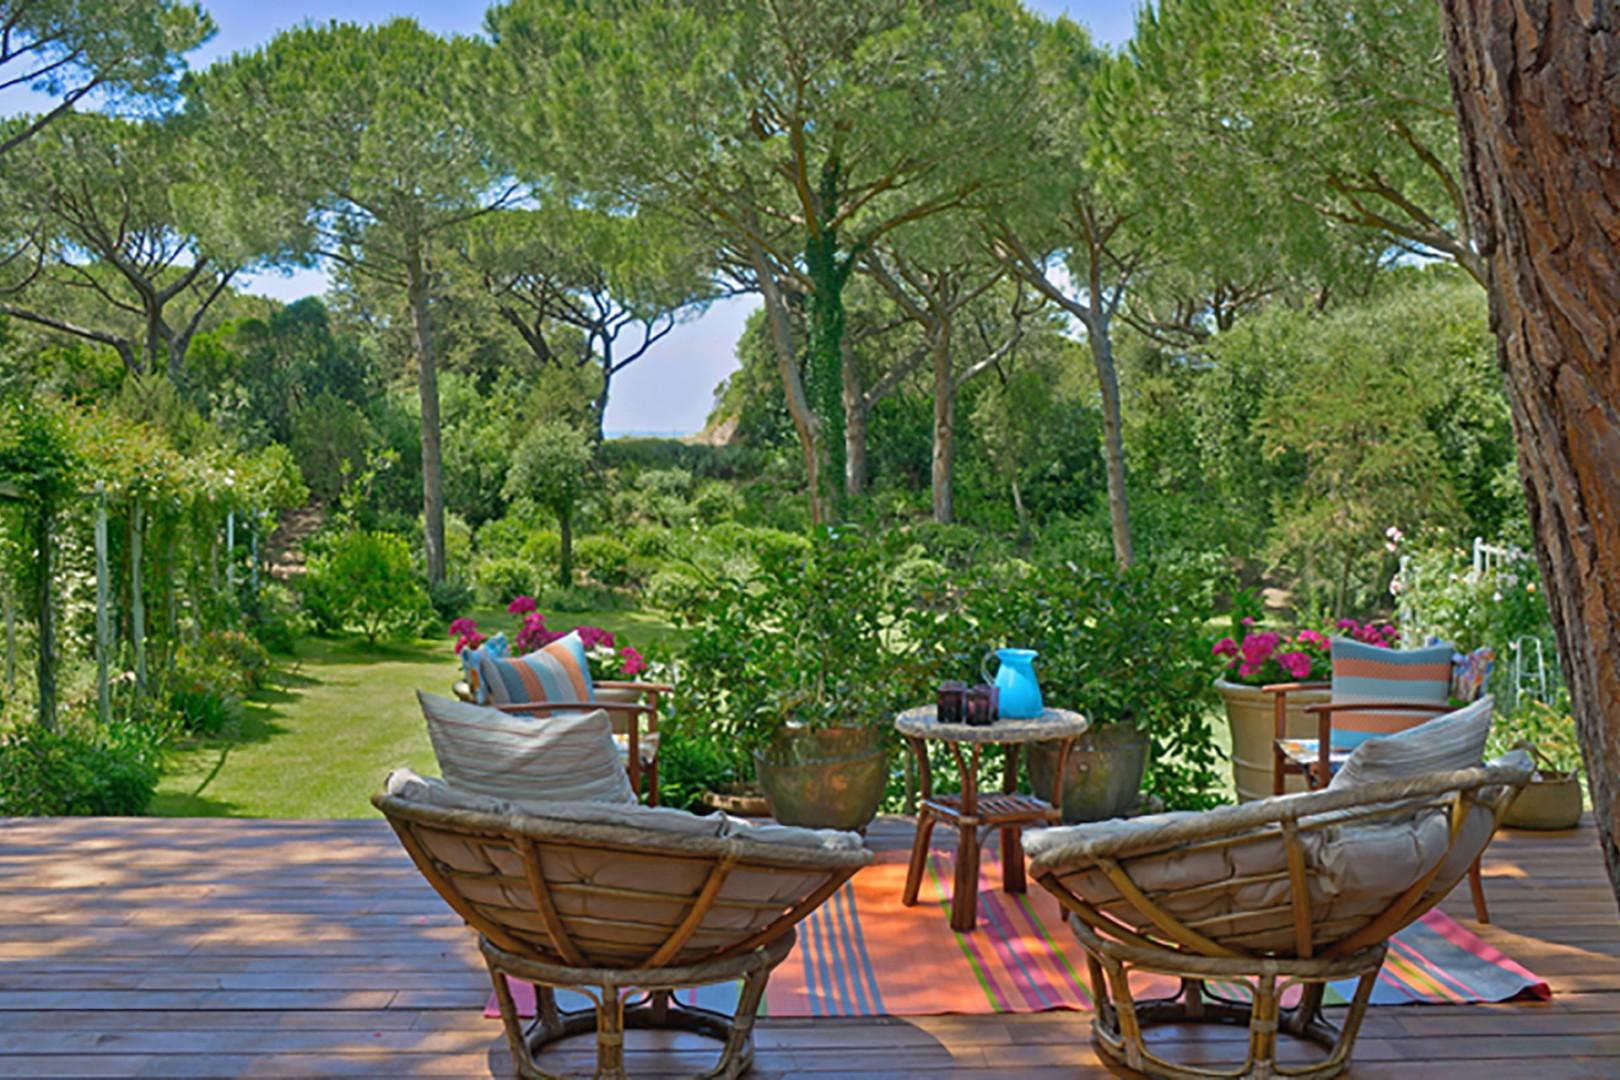 The estate is richly planted with fruit and olive trees, flowers and iconic umbrella pines.